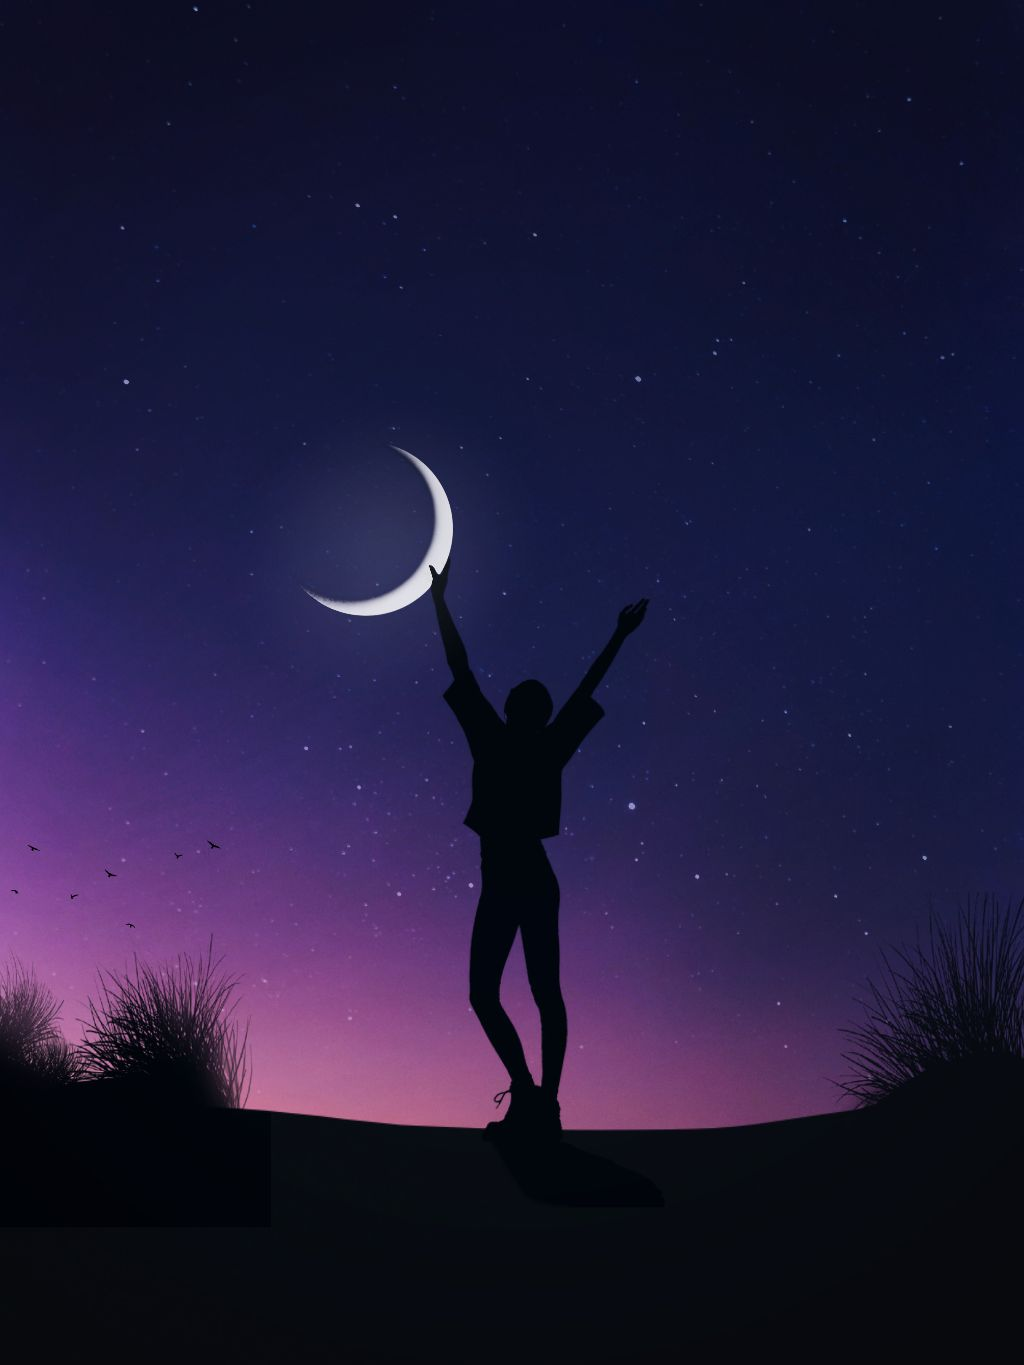 """""""I NeVeR DreaMeD aBouT SuCceSs,i WorKeD fOr iT.🕊""""  https://m.youtube.com/watch?v=-ihs-vT9T3Q . . .  #purple #success #power #stars #moon #dream #fulfil #imagination #happiness #madewithpicsart #silhouette #sky #wallpaper #background  #freetoedit"""